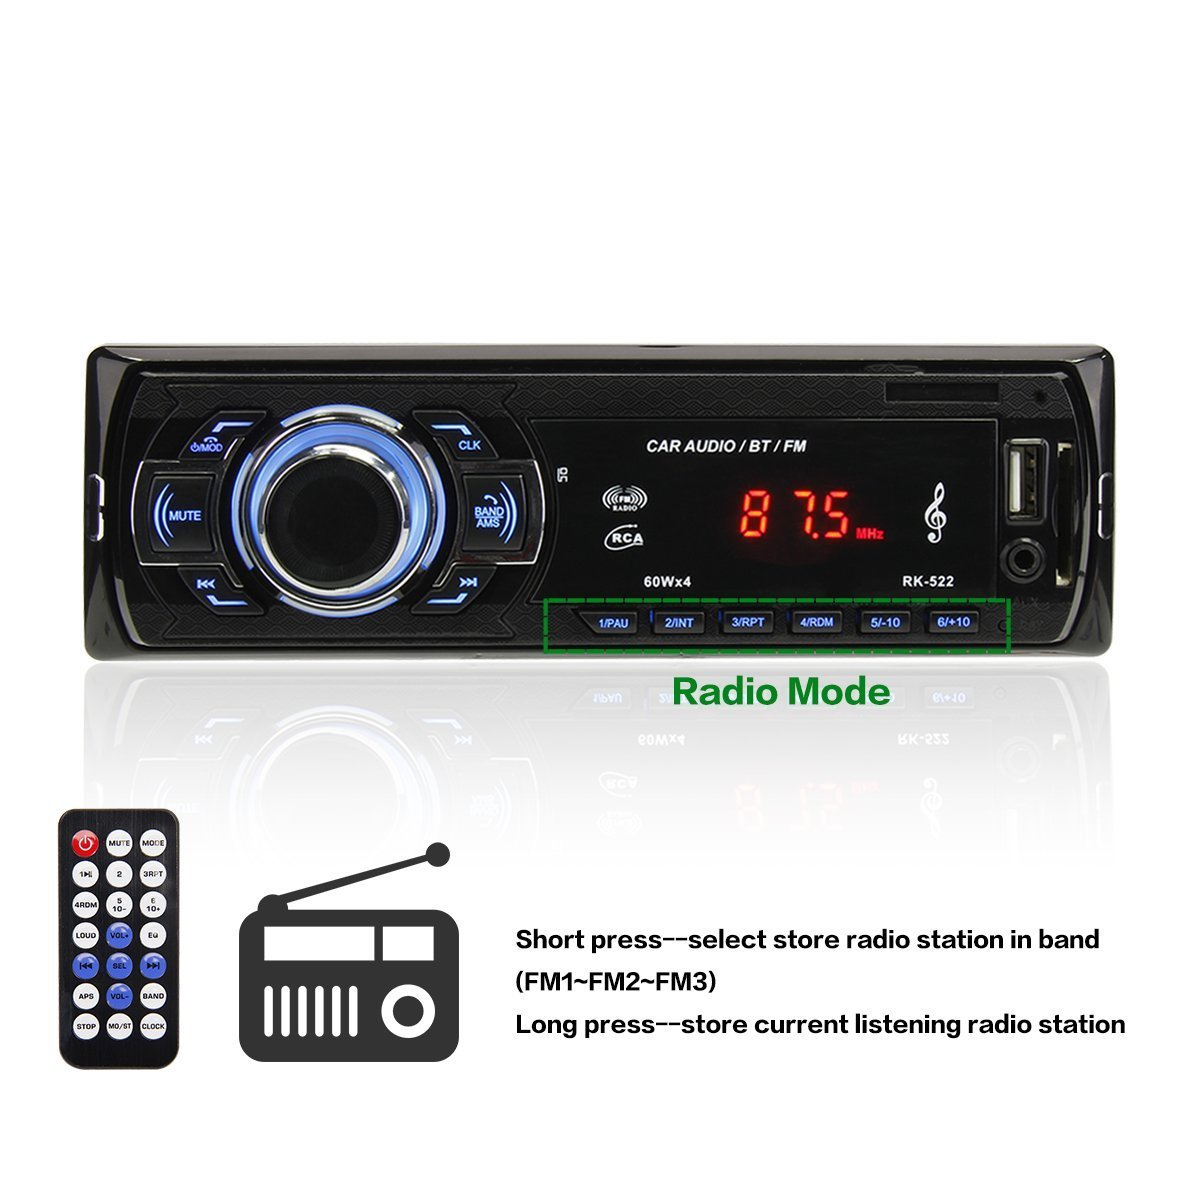 POMILE Car Stereo Audio Receiver Bluetooth, Car Radio MP3 Player Single Din In-Dash USB/SD/FM/AUX/MMC with Remote Control 12V, (No CD/DVD) by POMILE (Image #4)